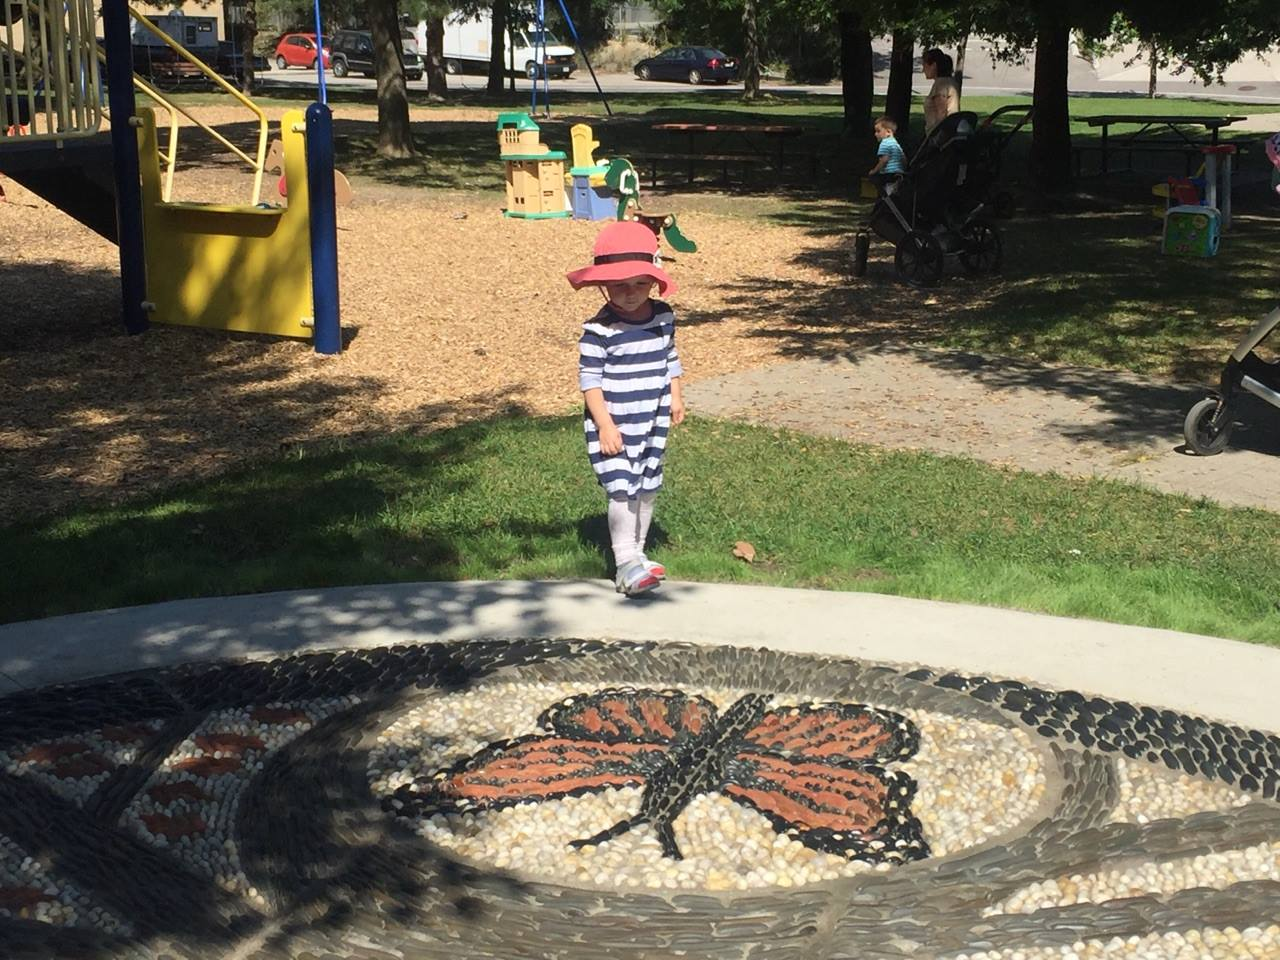 A child stands at the edge of a playground looking down at the edge of the pebble mosaic. The child is wearing a red hat and looks down at a large butterfly made of pebbles.